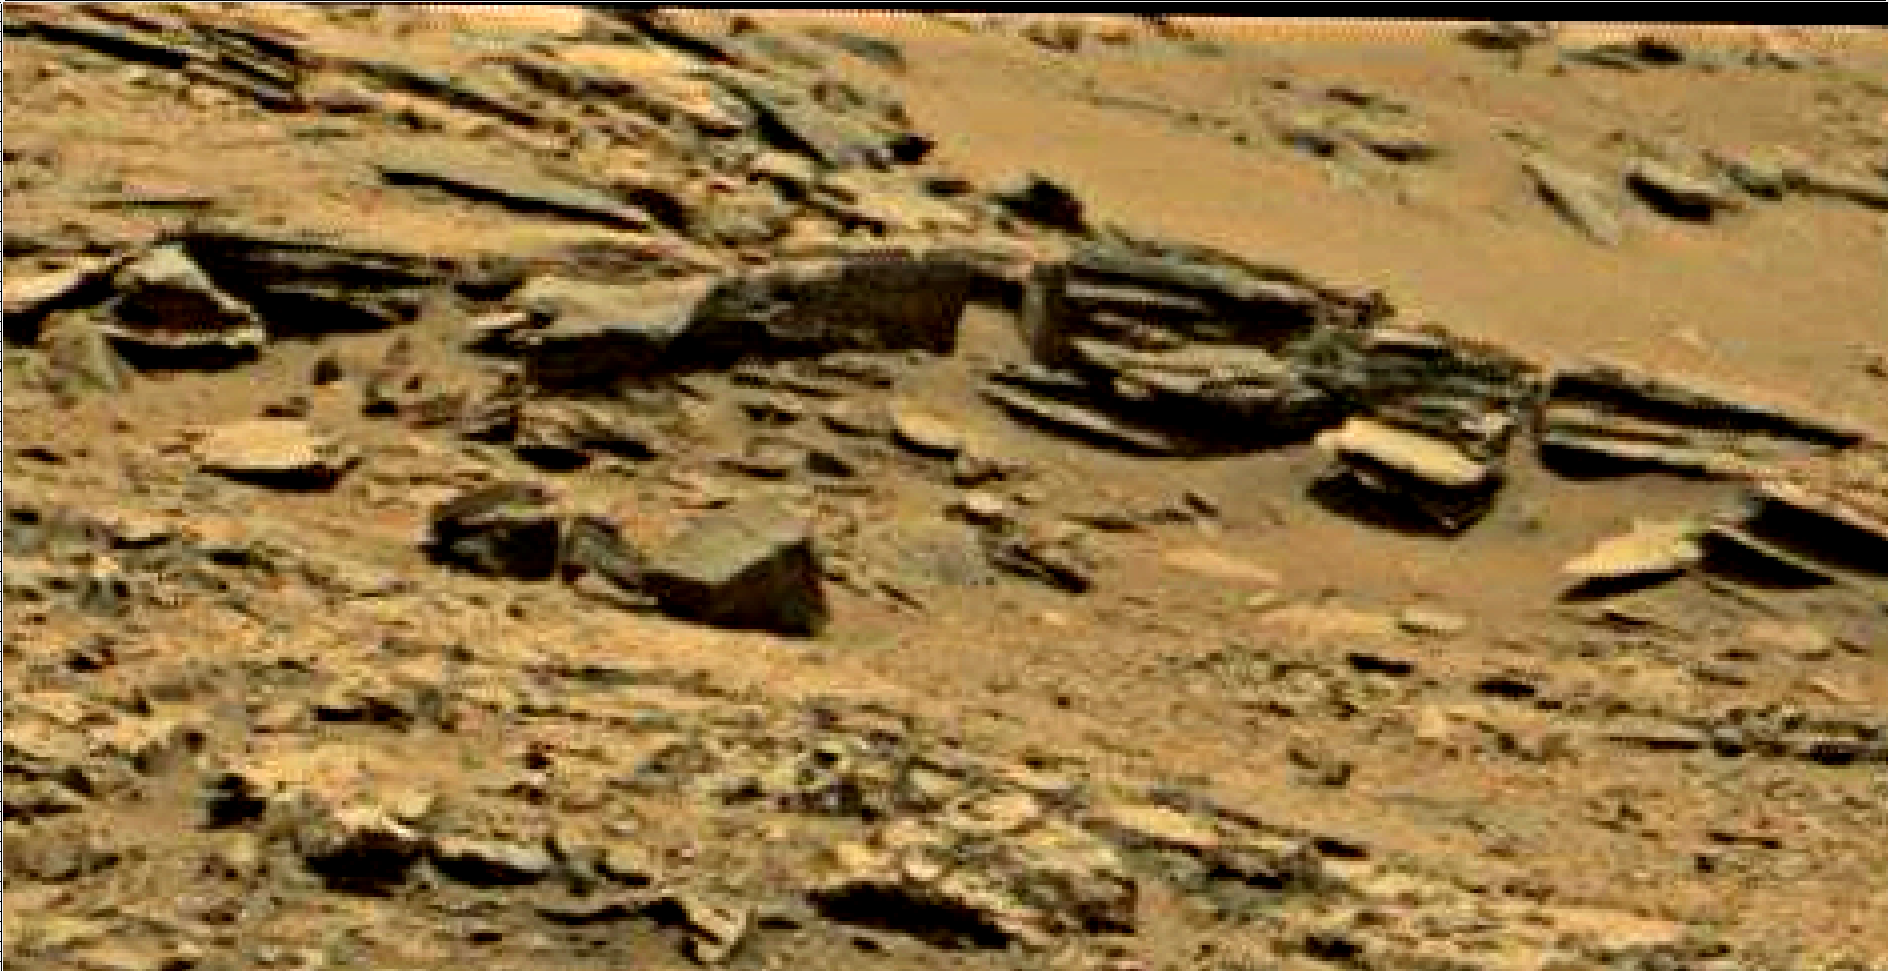 mars sol 1353 anomaly-artifacts 68 was life on mars